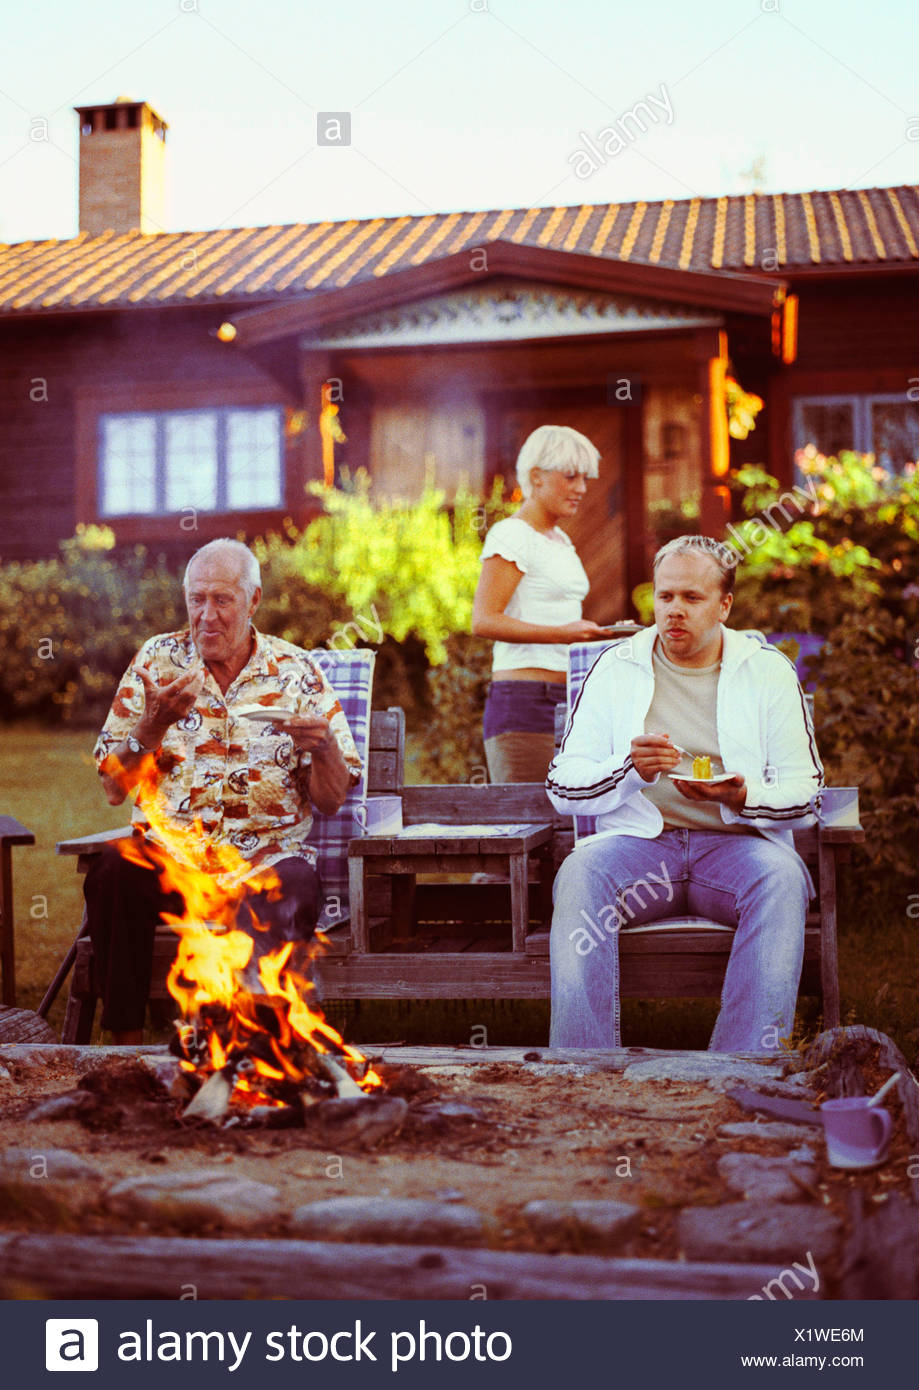 A barbecue in the garden Leksand Sweden 2002 - Stock Image